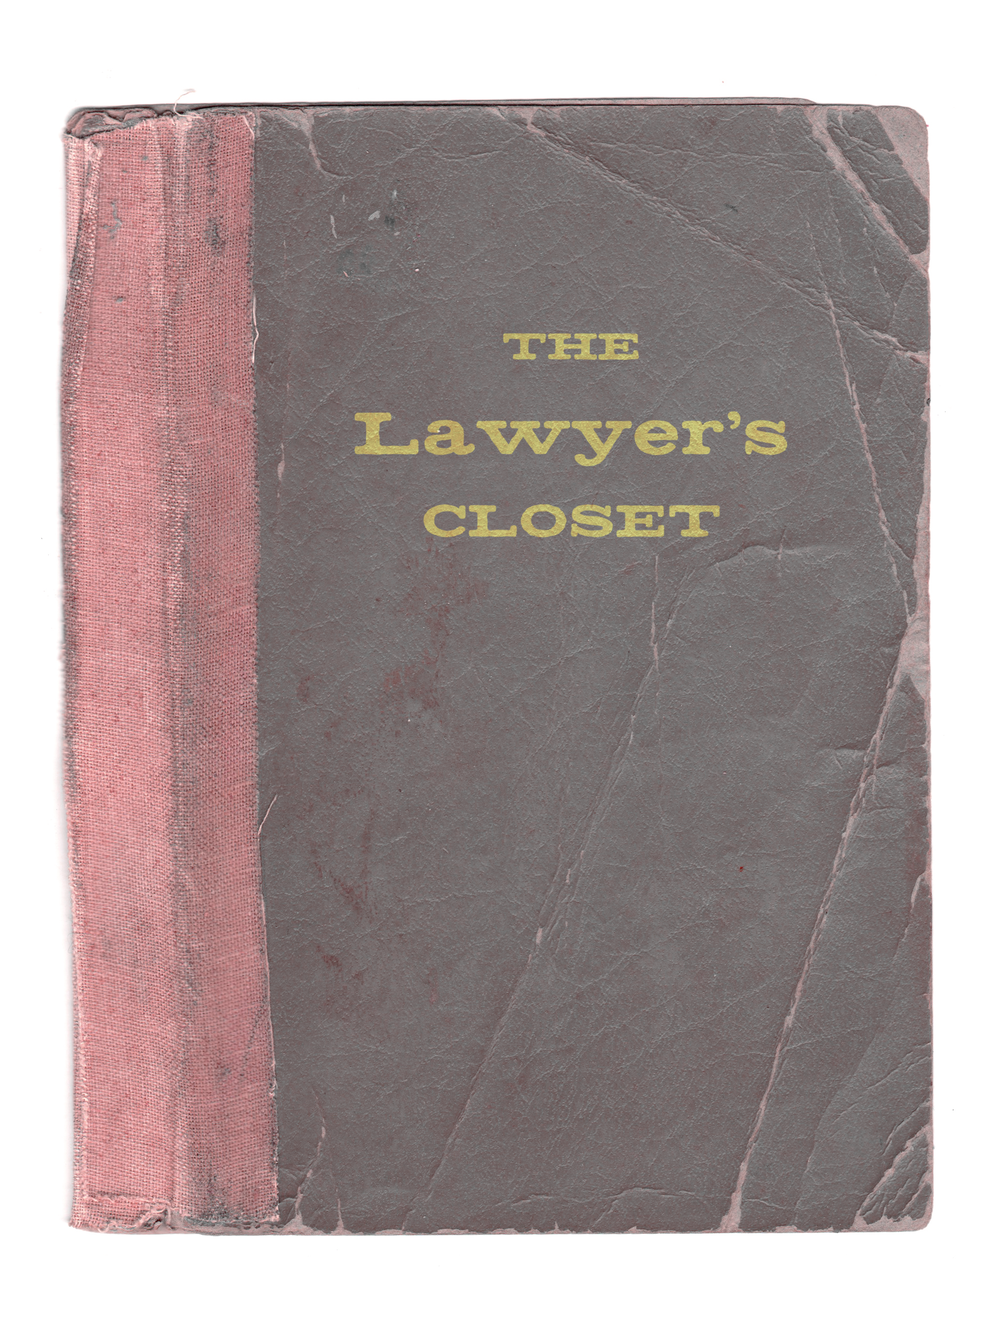 THE LAWYER'S CLOSET